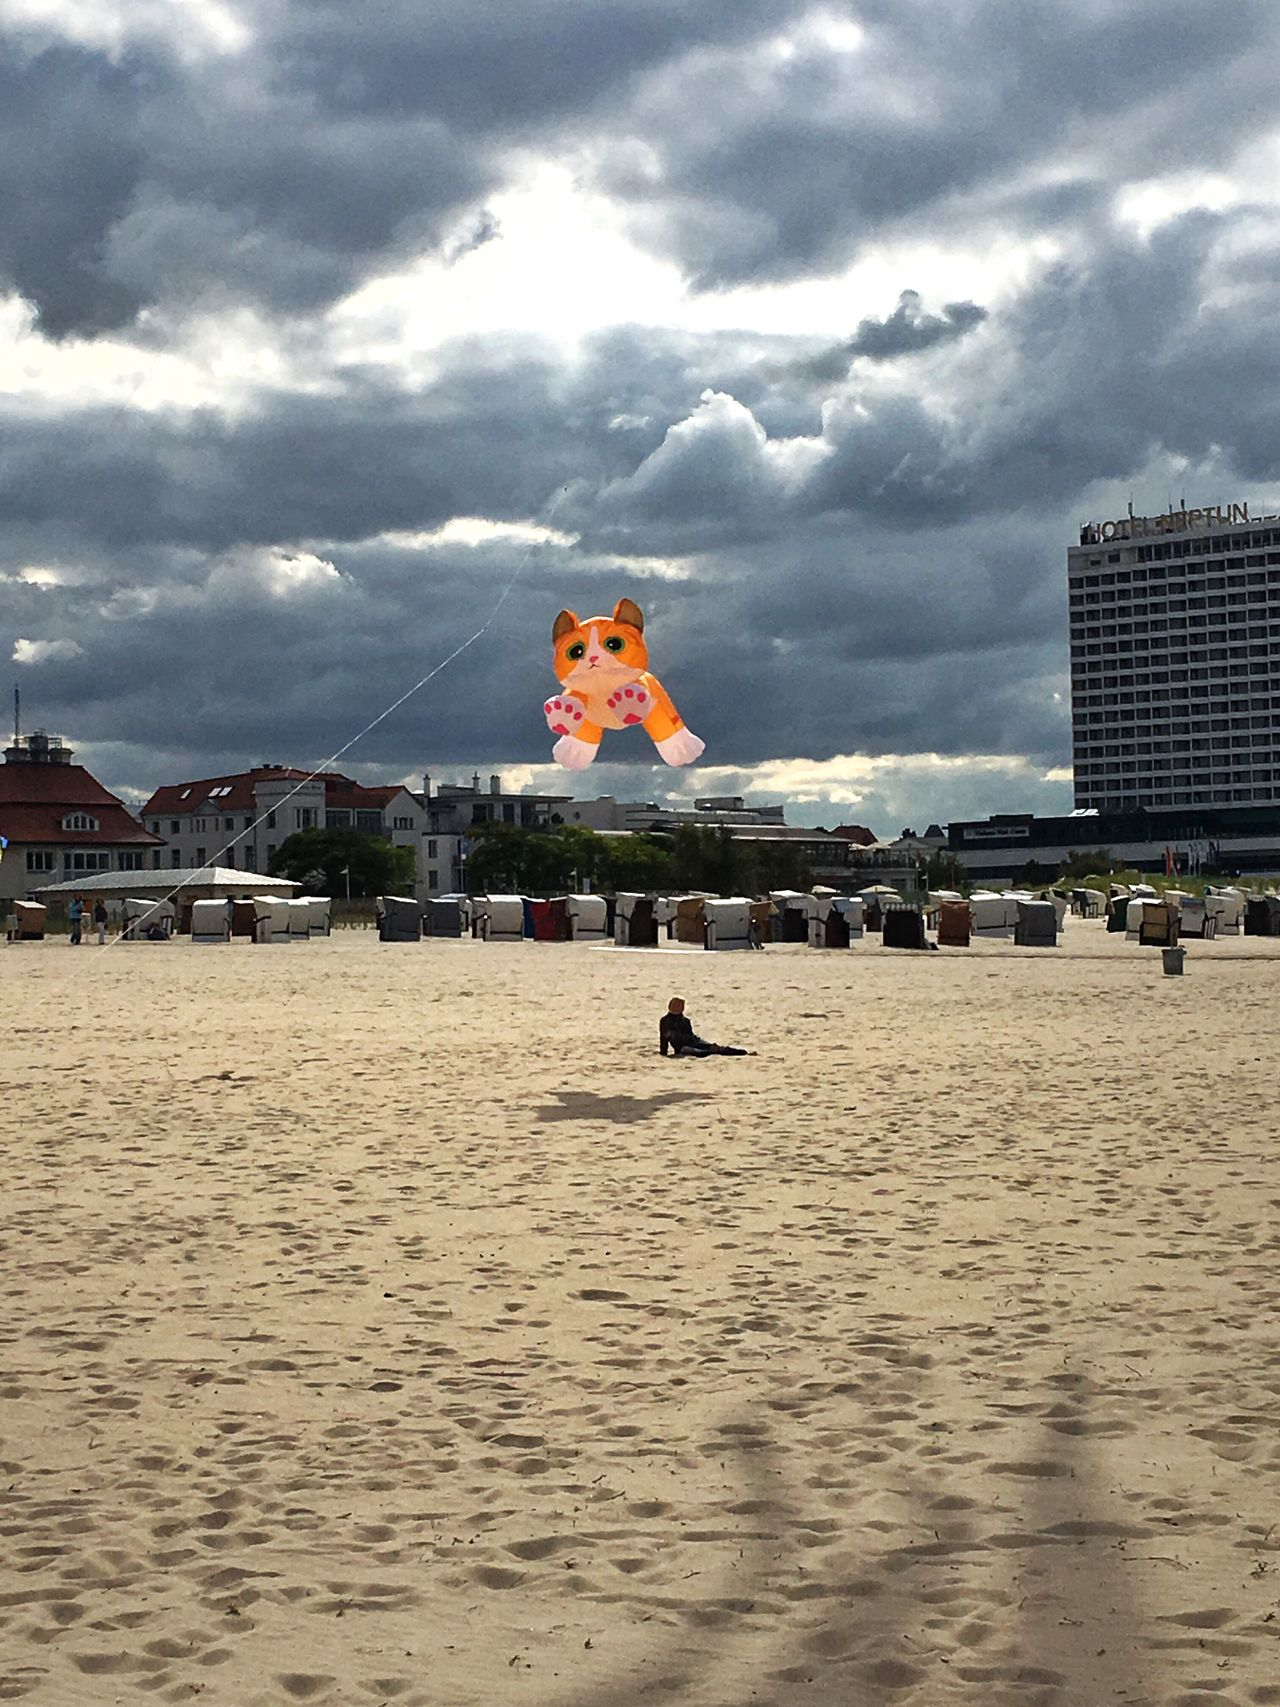 Kite Flying Animals Warnemünde Beach Autumn Cloud Clouds And Sky Building Exterior Built Structure Architecture Waterfront Vacations Sand Sky Travel Destinations Cloud - Sky Mid-air Tourism Flying Water Outdoors Day Tranquil Scene My Year My View My Favorite Place